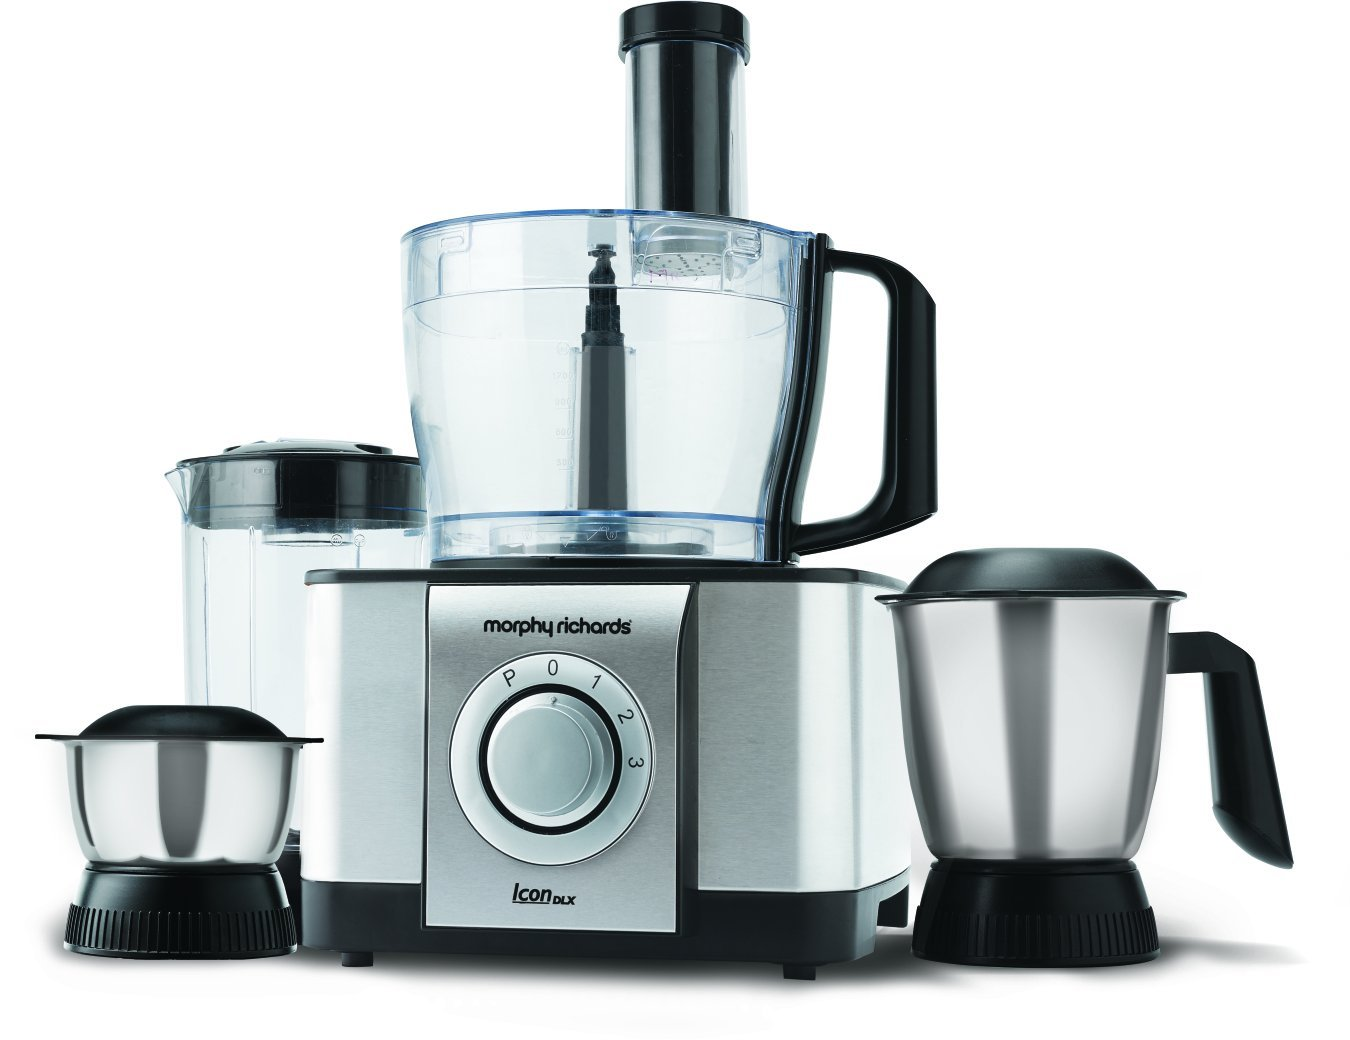 MORPHY RICHARDS ICON DLX FOOD PROCESSOR Reviews, MORPHY RICHARDS ...